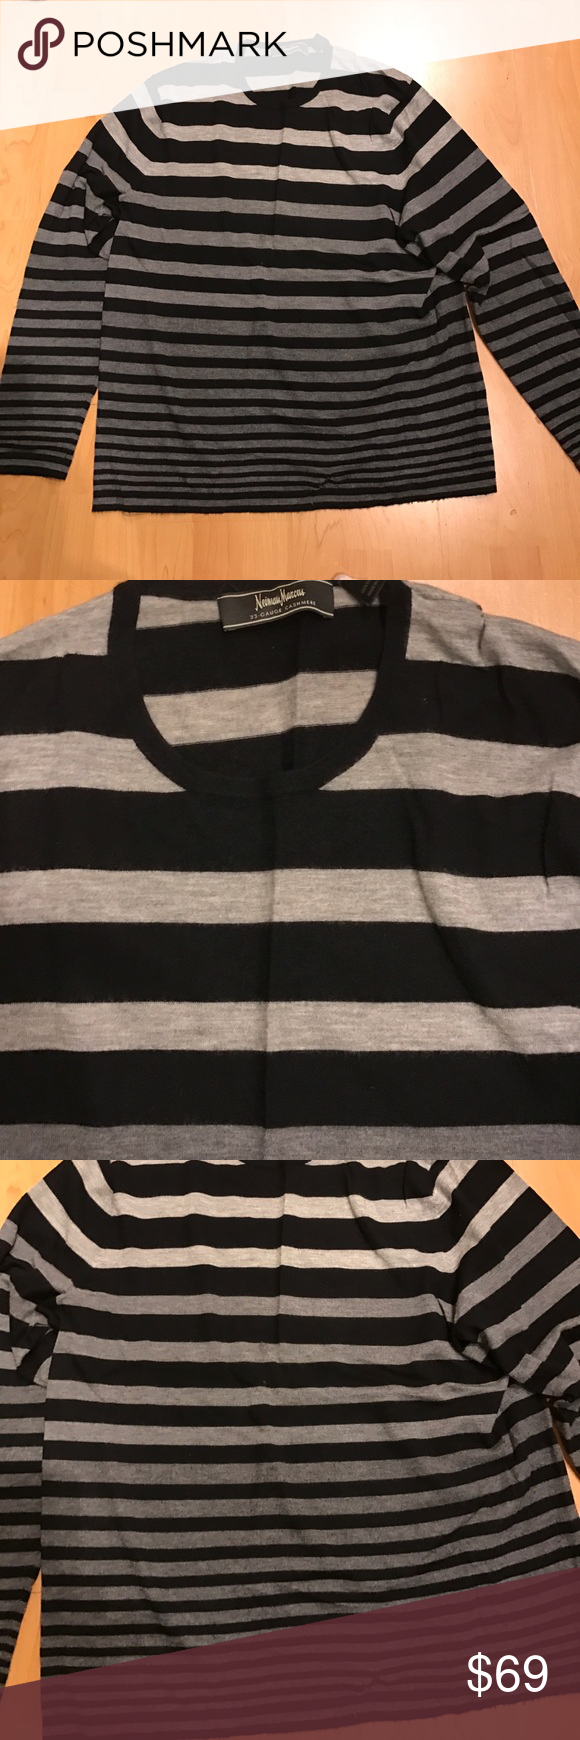 Neiman Marcus Men's striped cashmere sweater | Neiman marcus ...